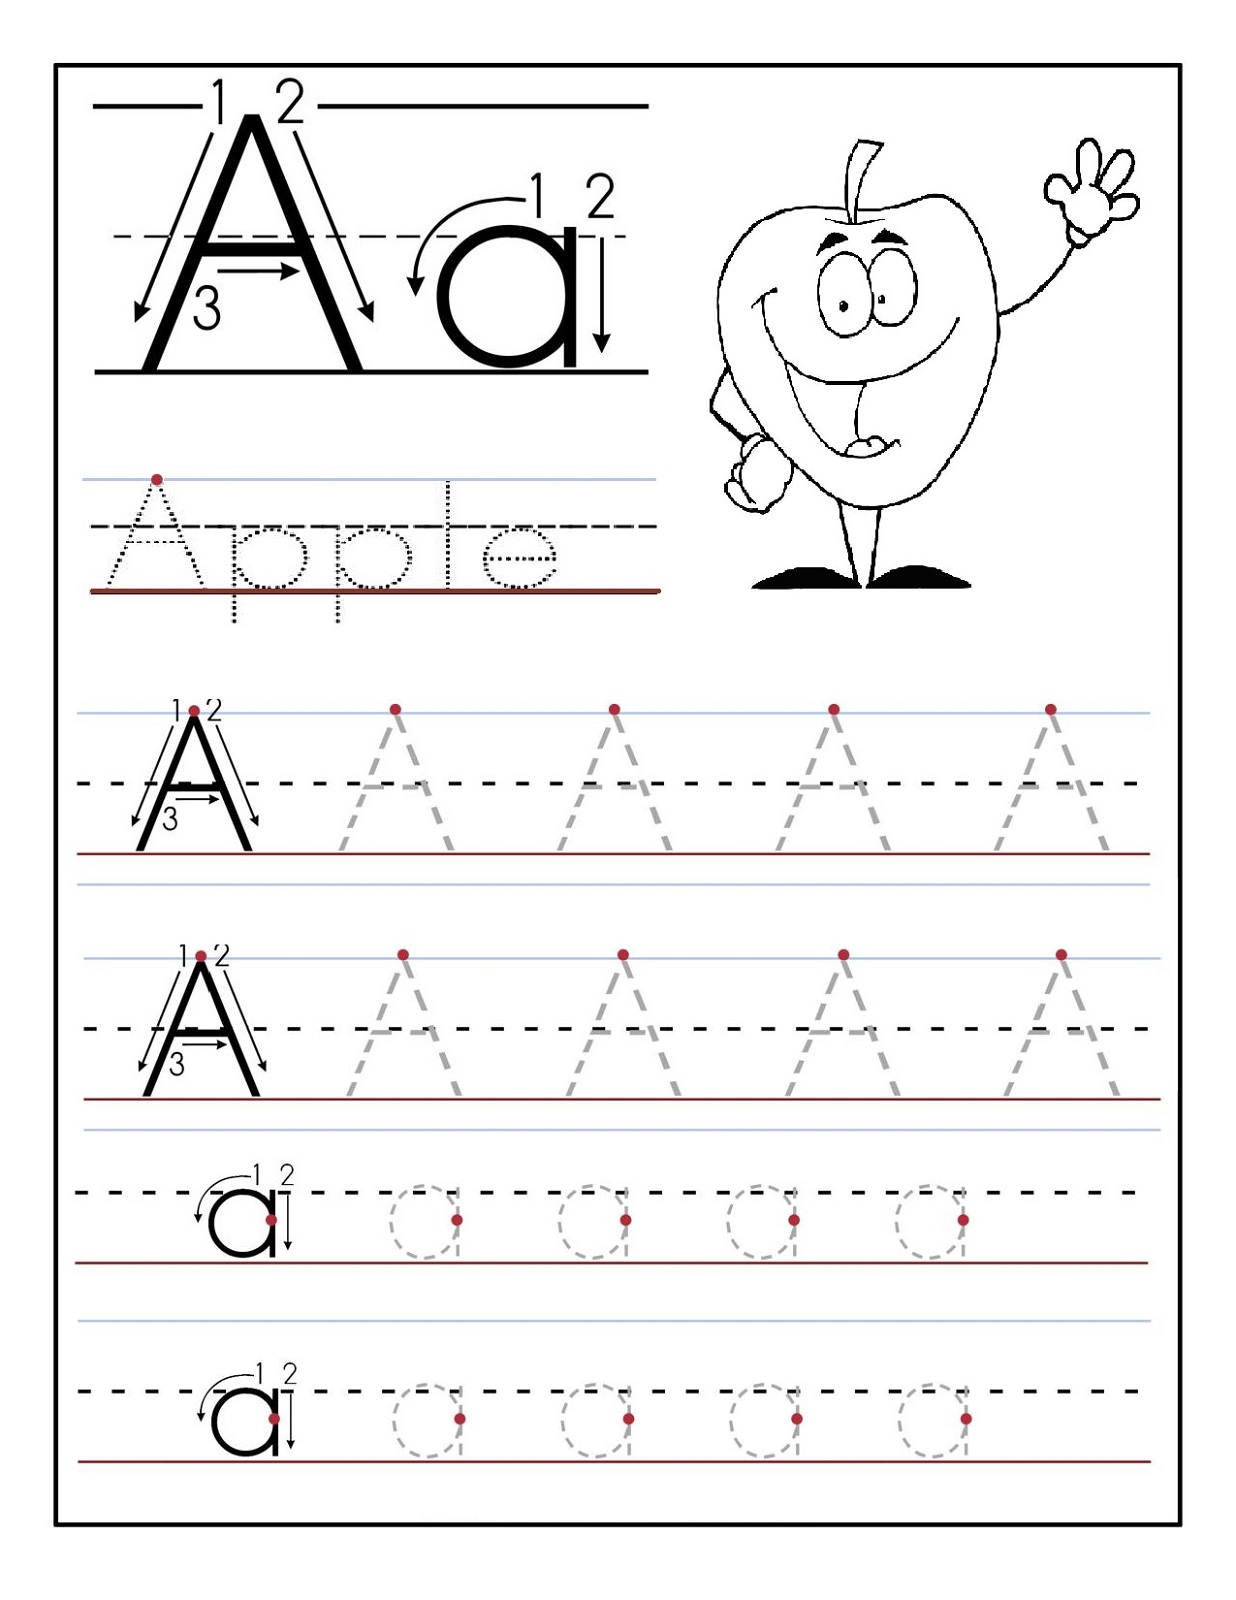 Worksheet Free Pre School Worksheets free printable preschool worksheets tracing abitlikethis tracing